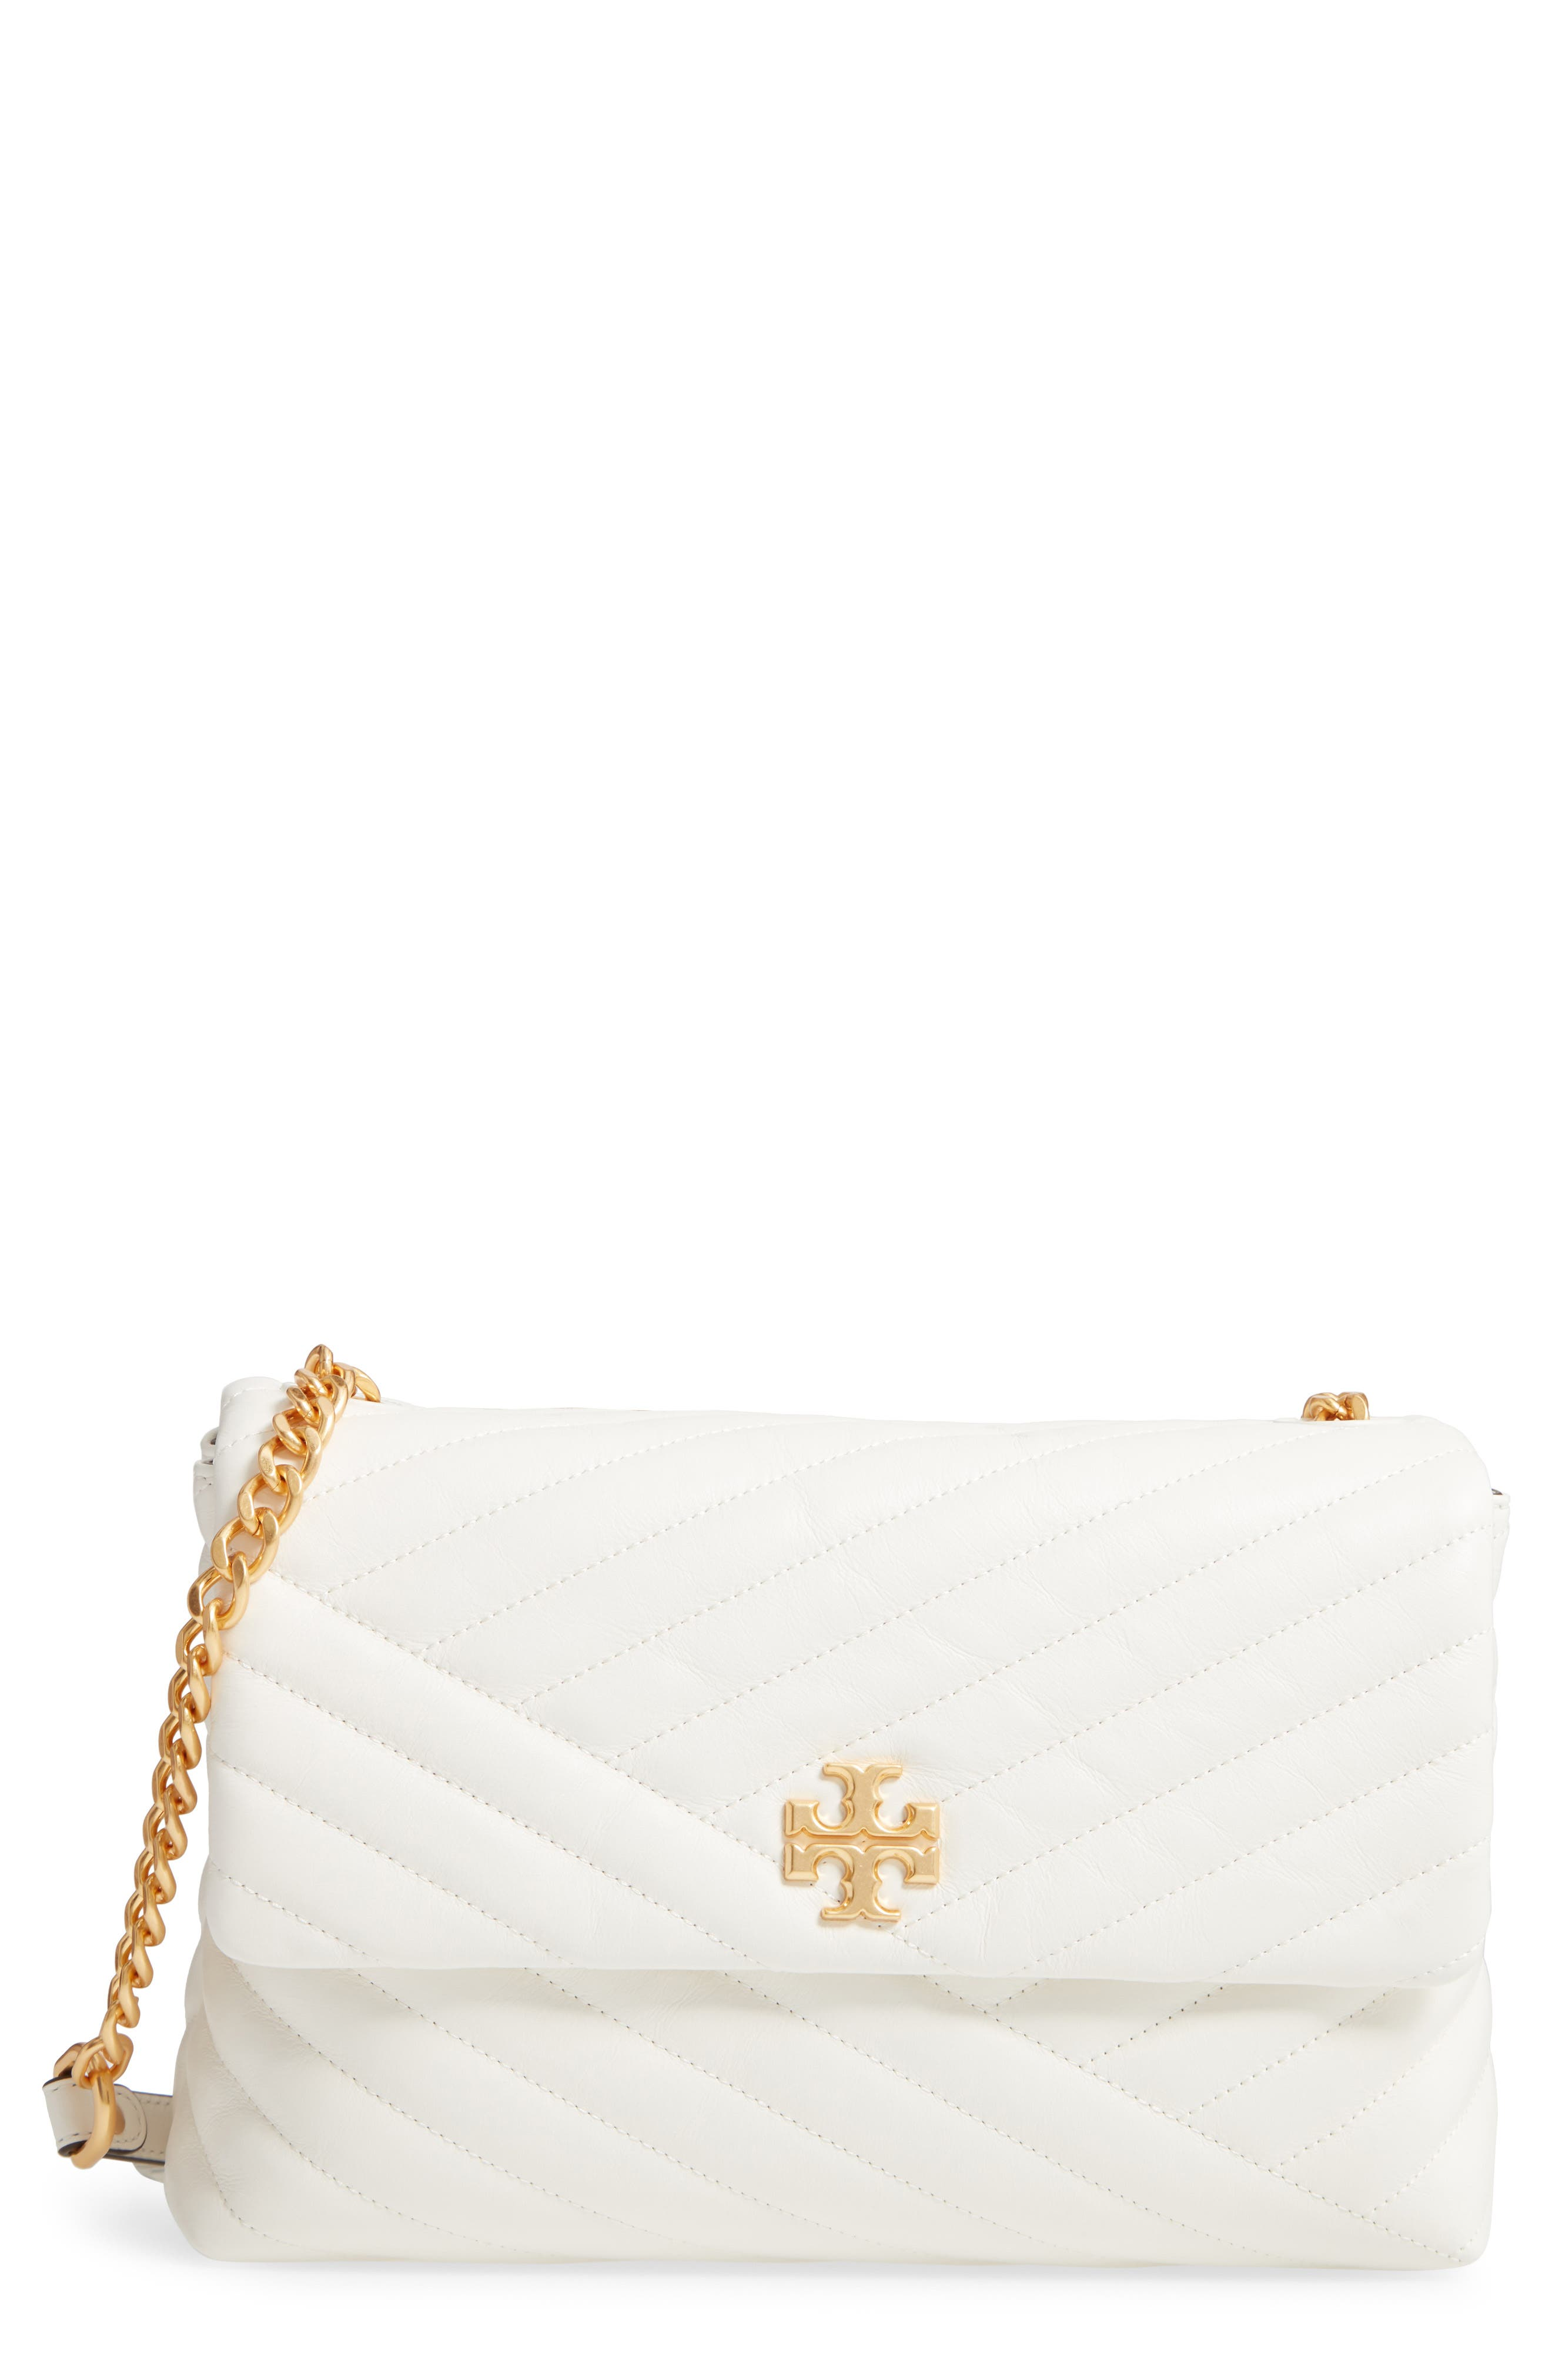 TORY BURCH Kira Chevron Quilted Leather Shoulder Bag, Main, color, NEW IVORY